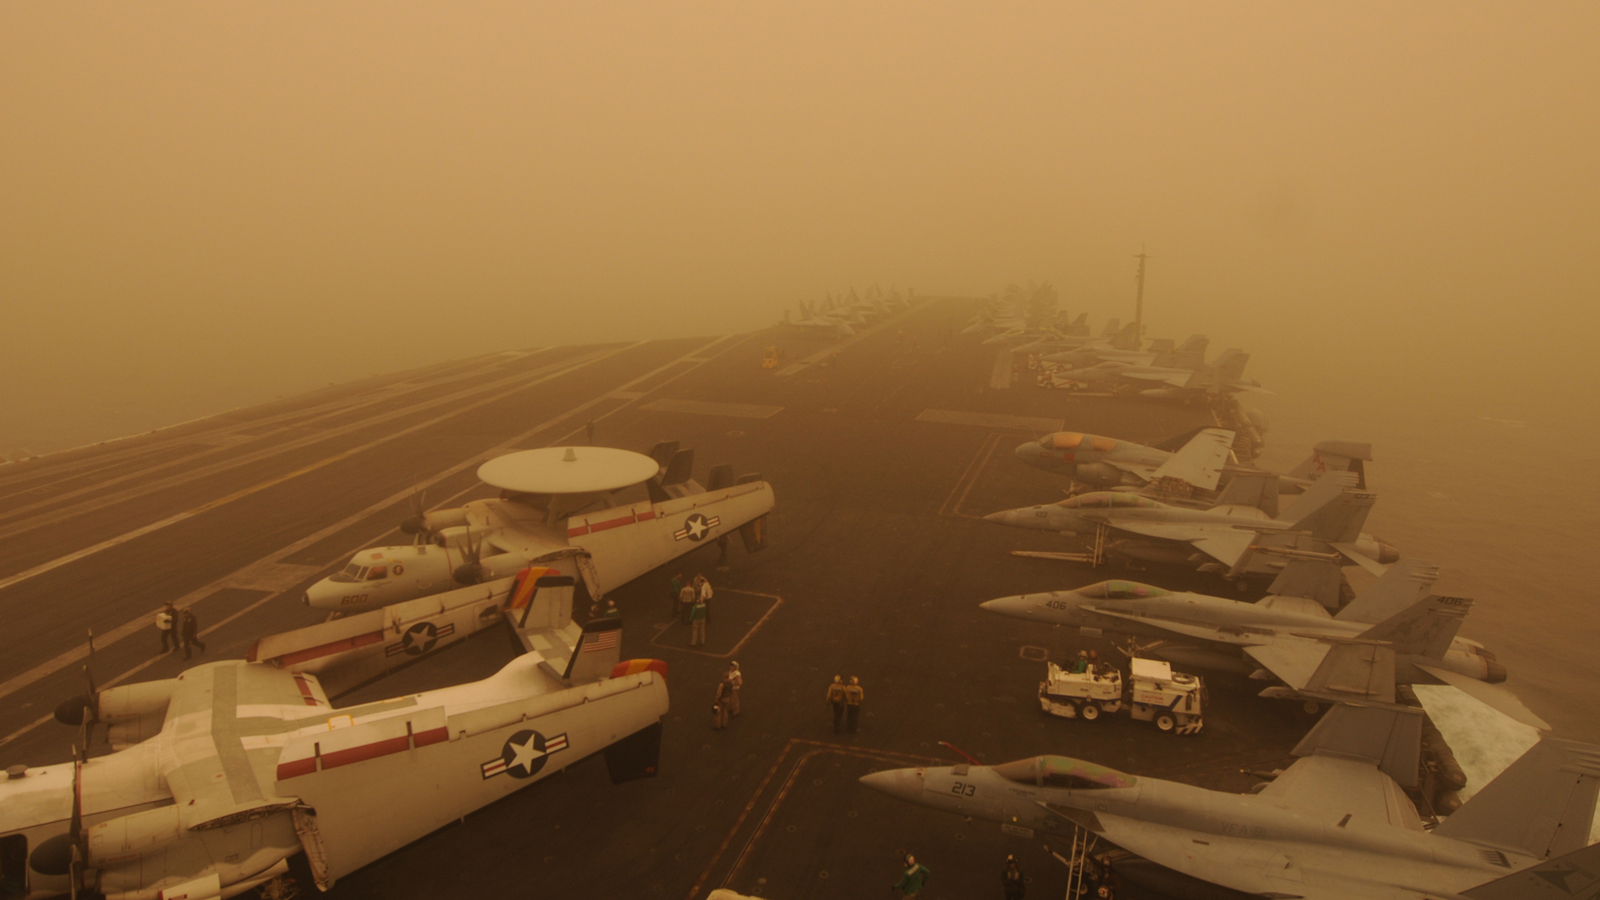 Click here to read How Can This Aircraft Supercarrier Be In the Middle of a Desert Storm?